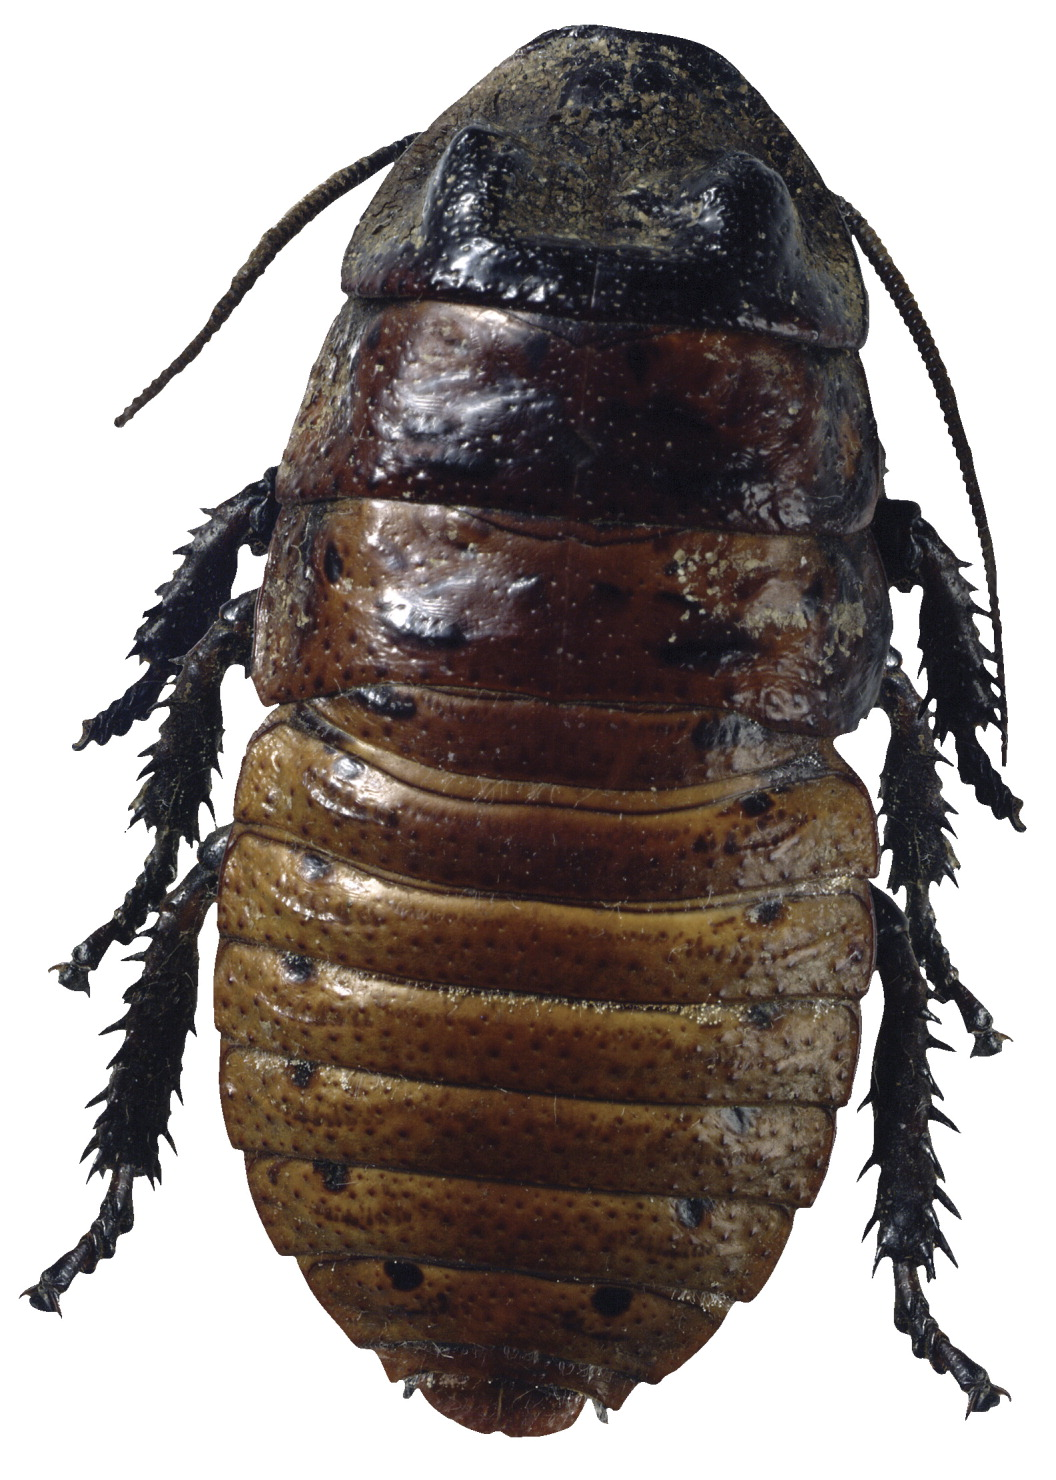 Frey Scientific Madagascar Hissing Cockroach Living Material Coupon - Female